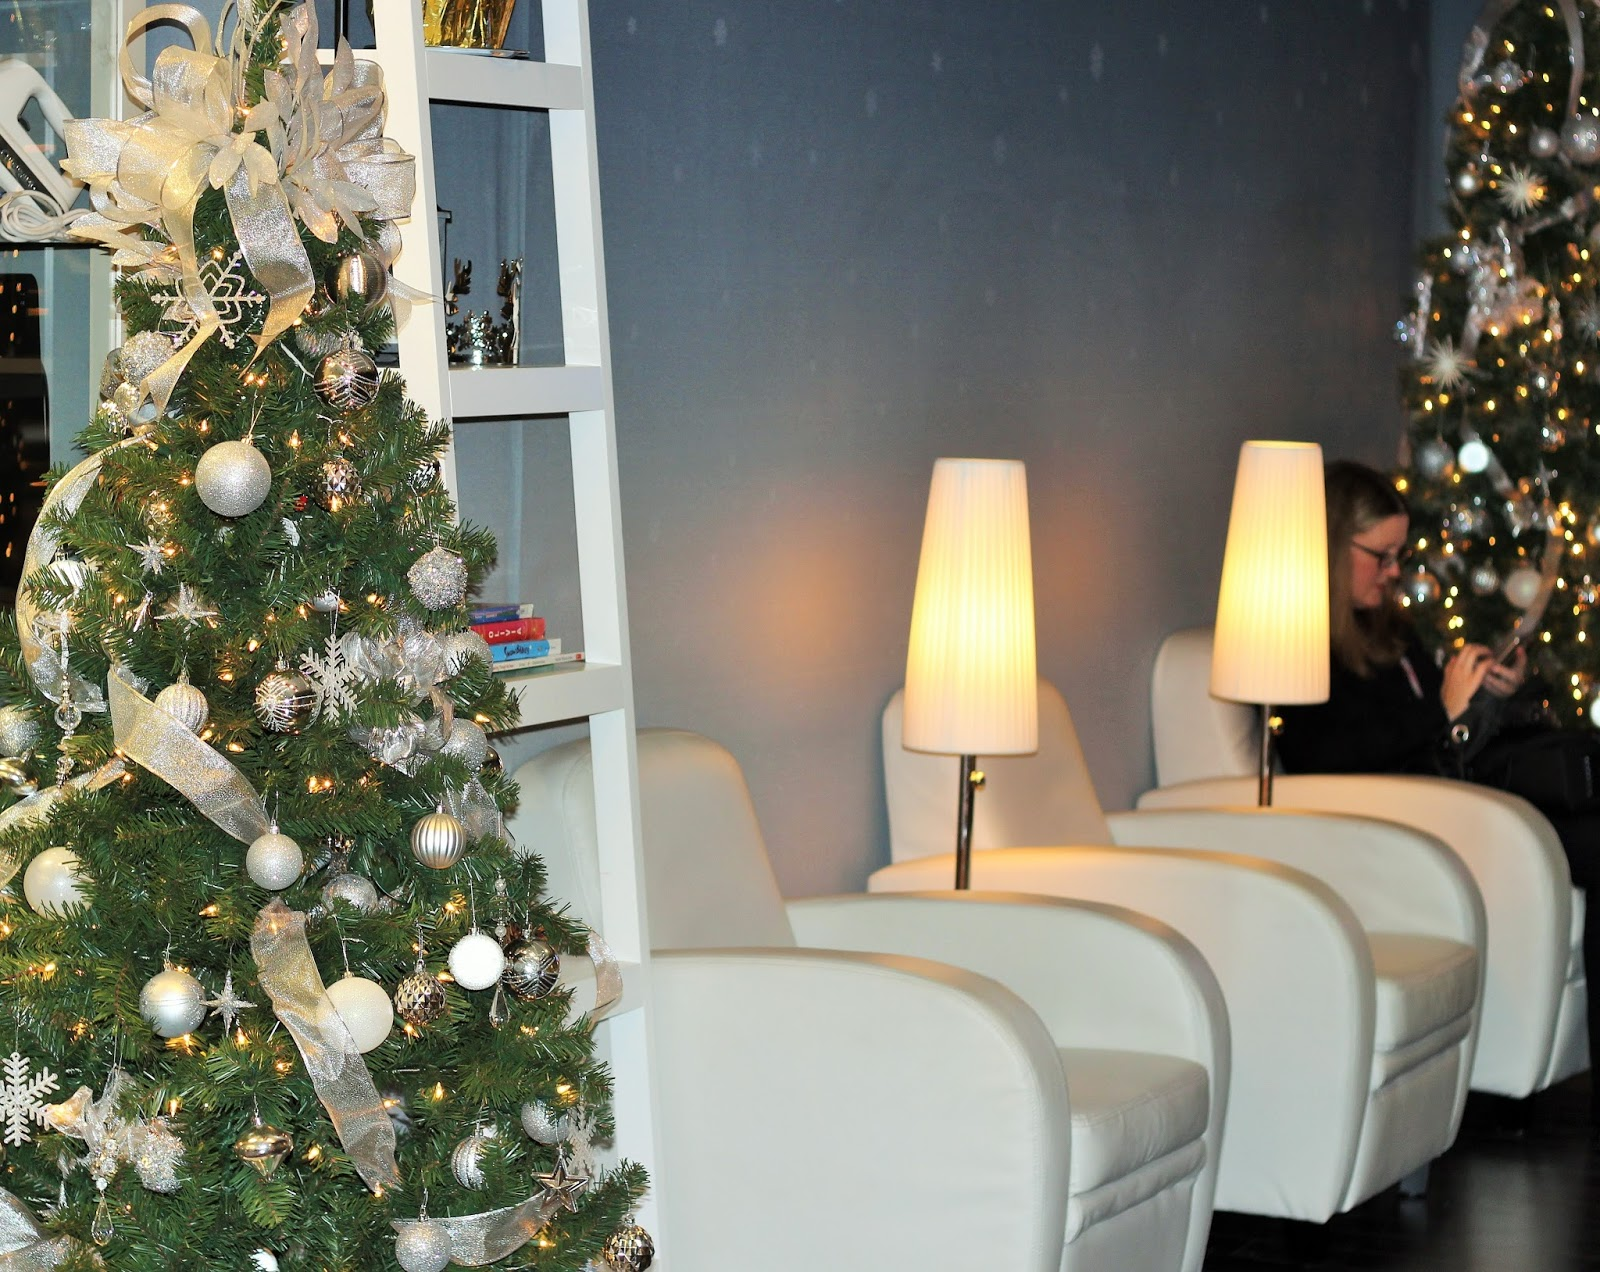 RBC AVION BOUTIQUE IN YORKDALE MALL IS EVERY HOLIDAY SHOPPER'S DREAM |  MY EXPERIENCE IN DETAILS